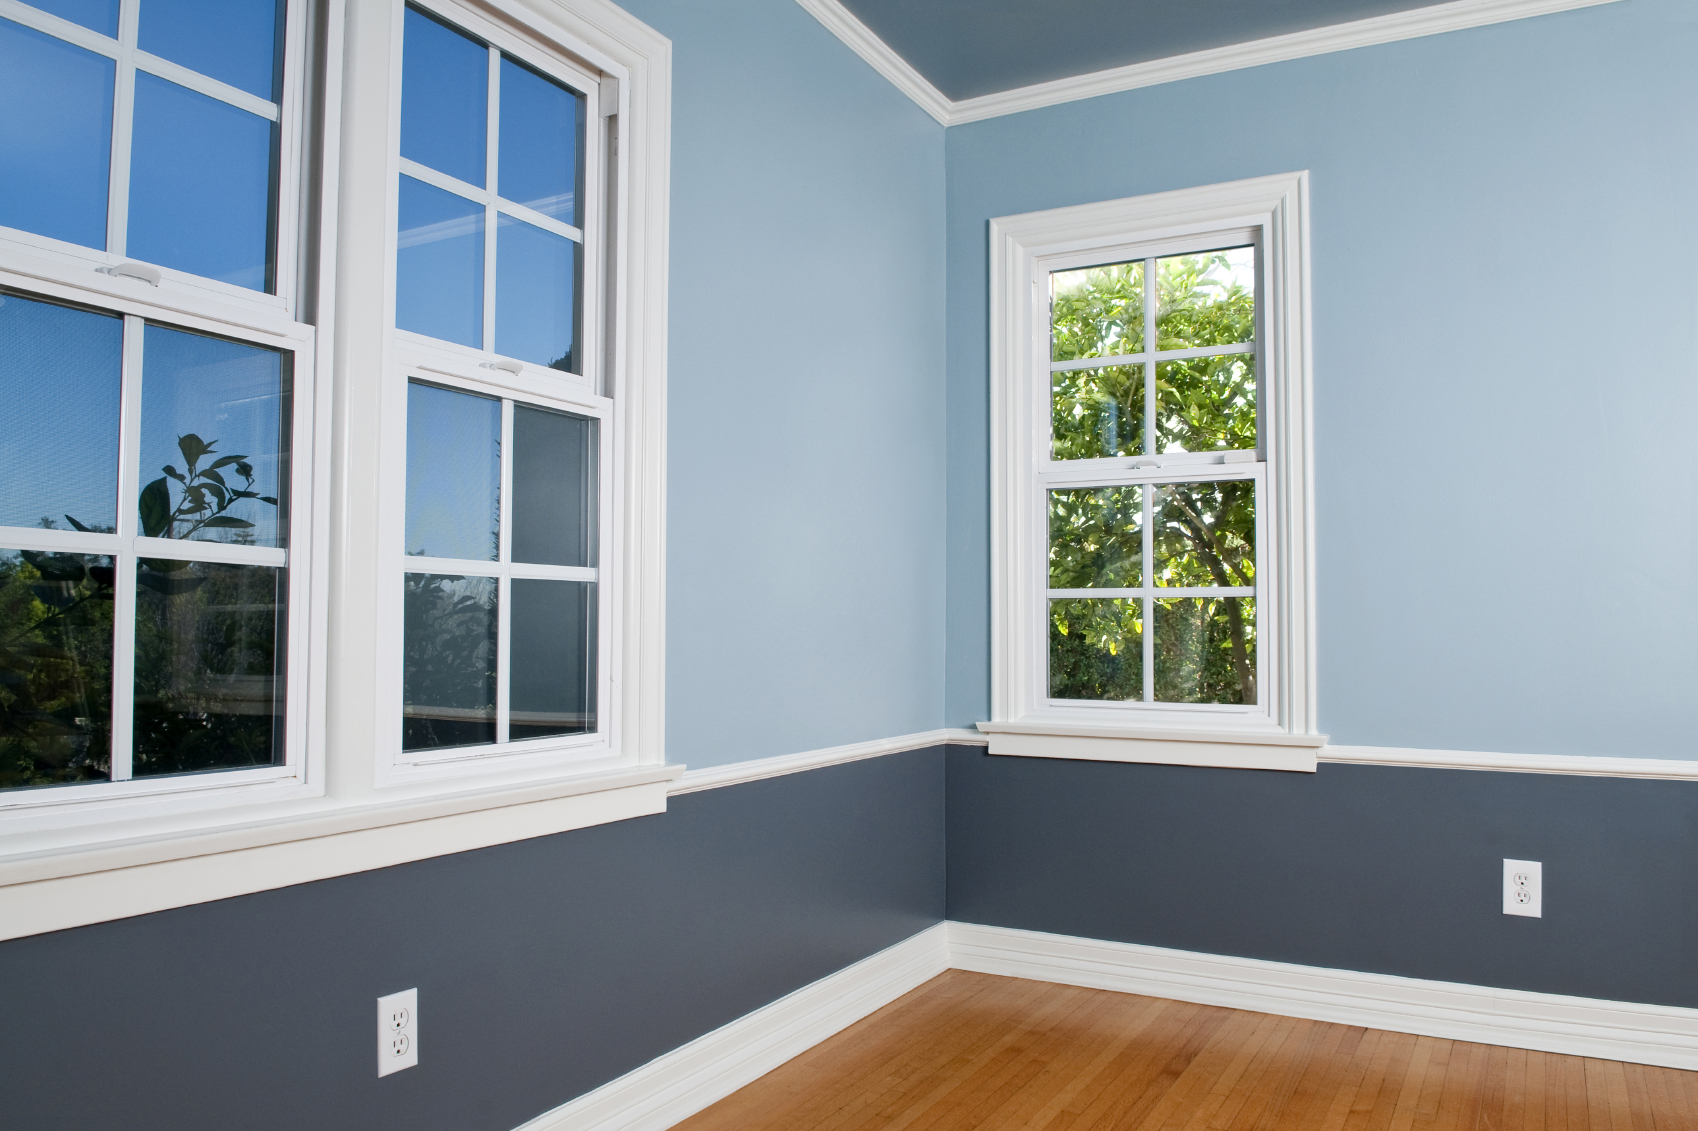 New Home Paint Colors guy painting | category archives: our workour work archives - guy